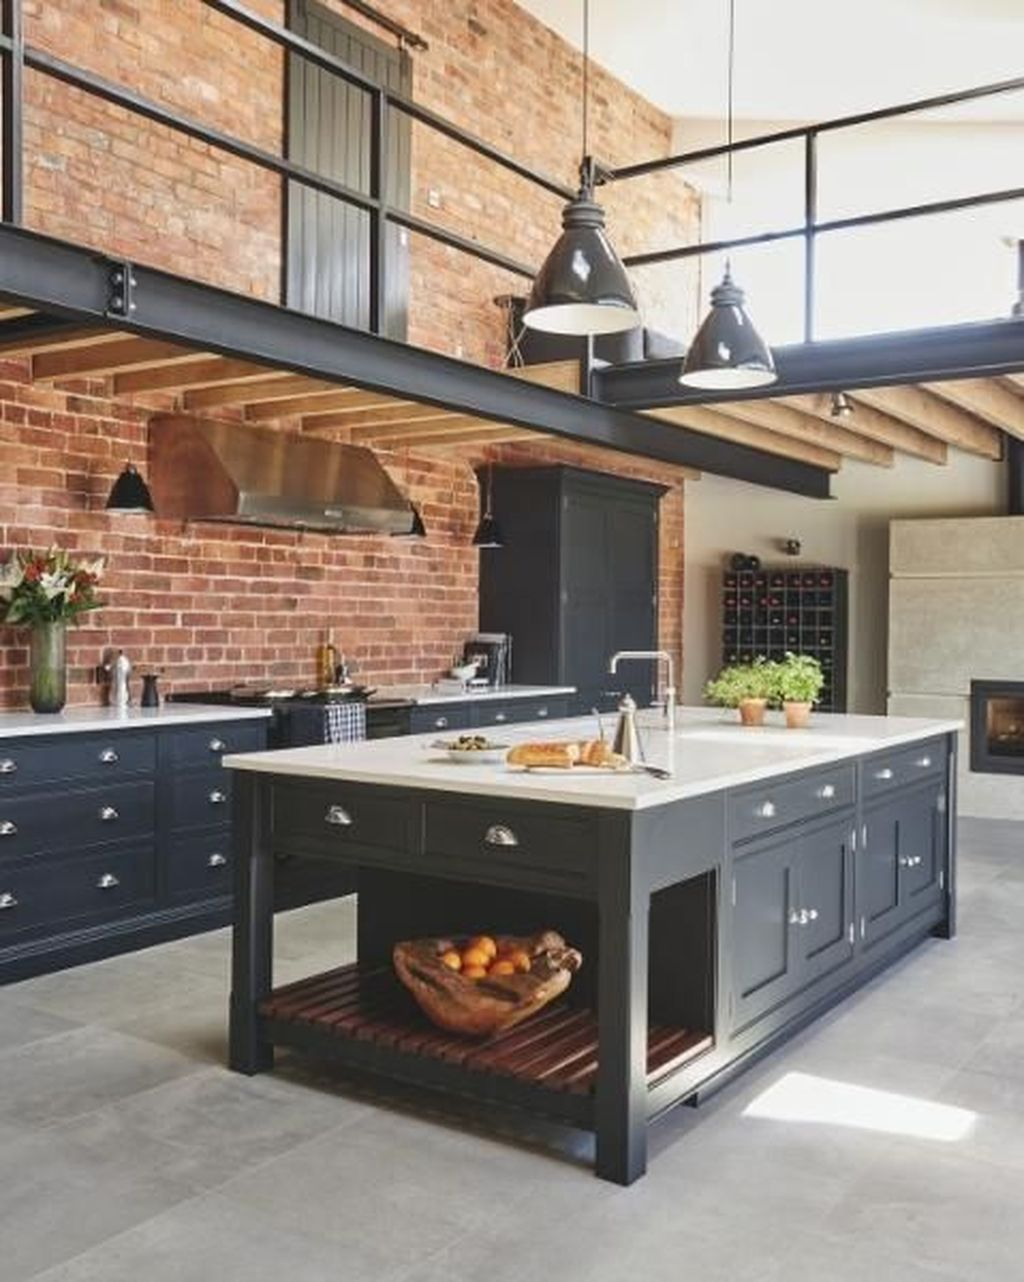 Industrial Kitchens Decor For Your Home In 2020 Industrial Style